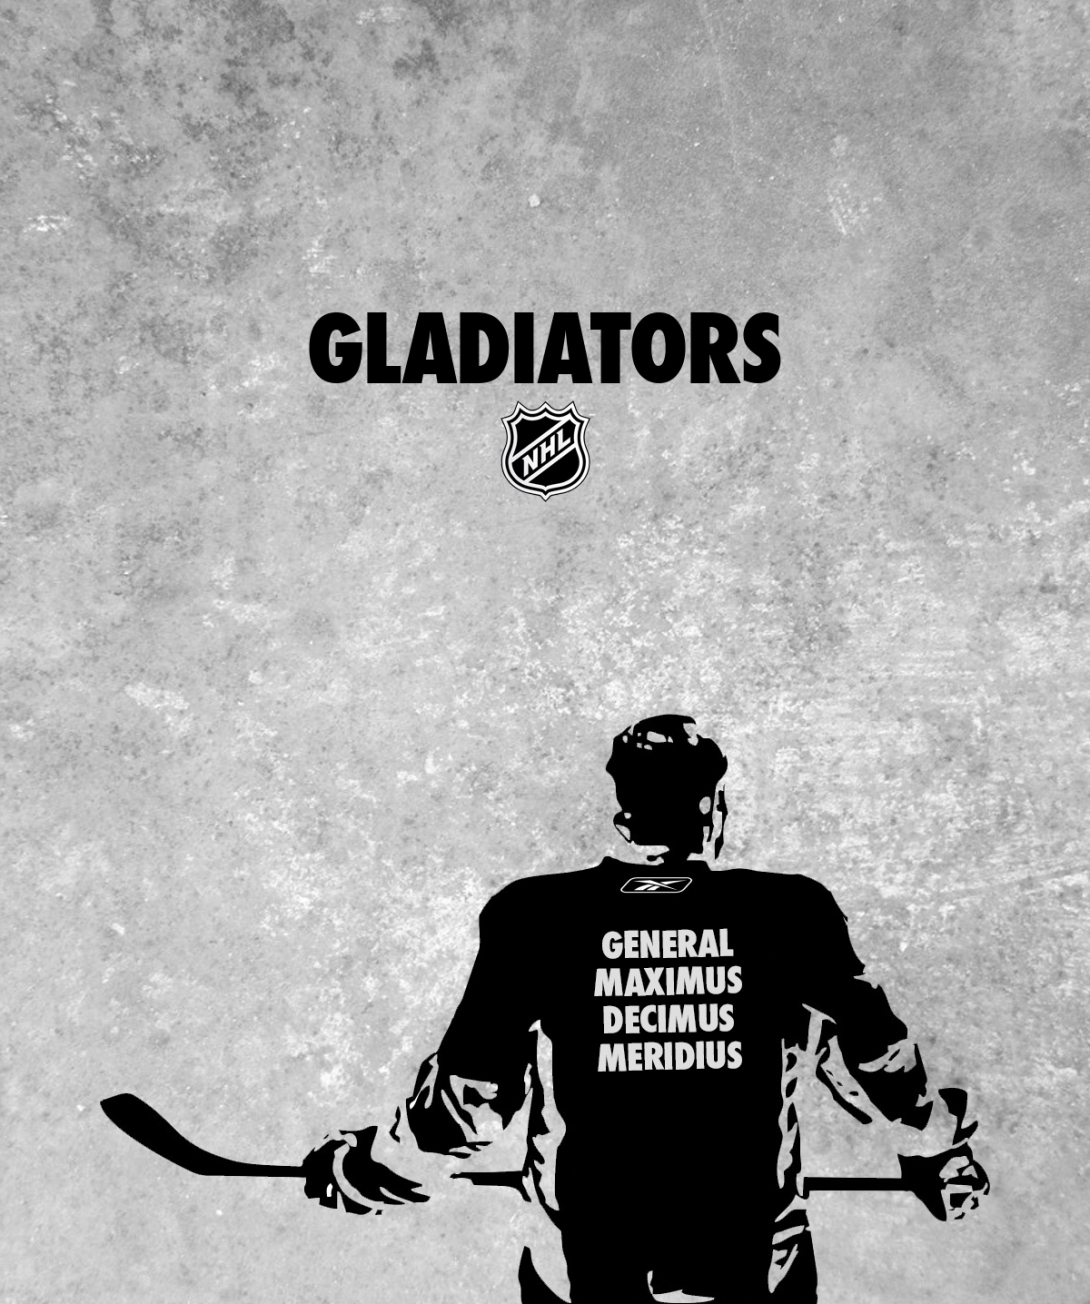 ice hockey advertising idea - modern day gladiators